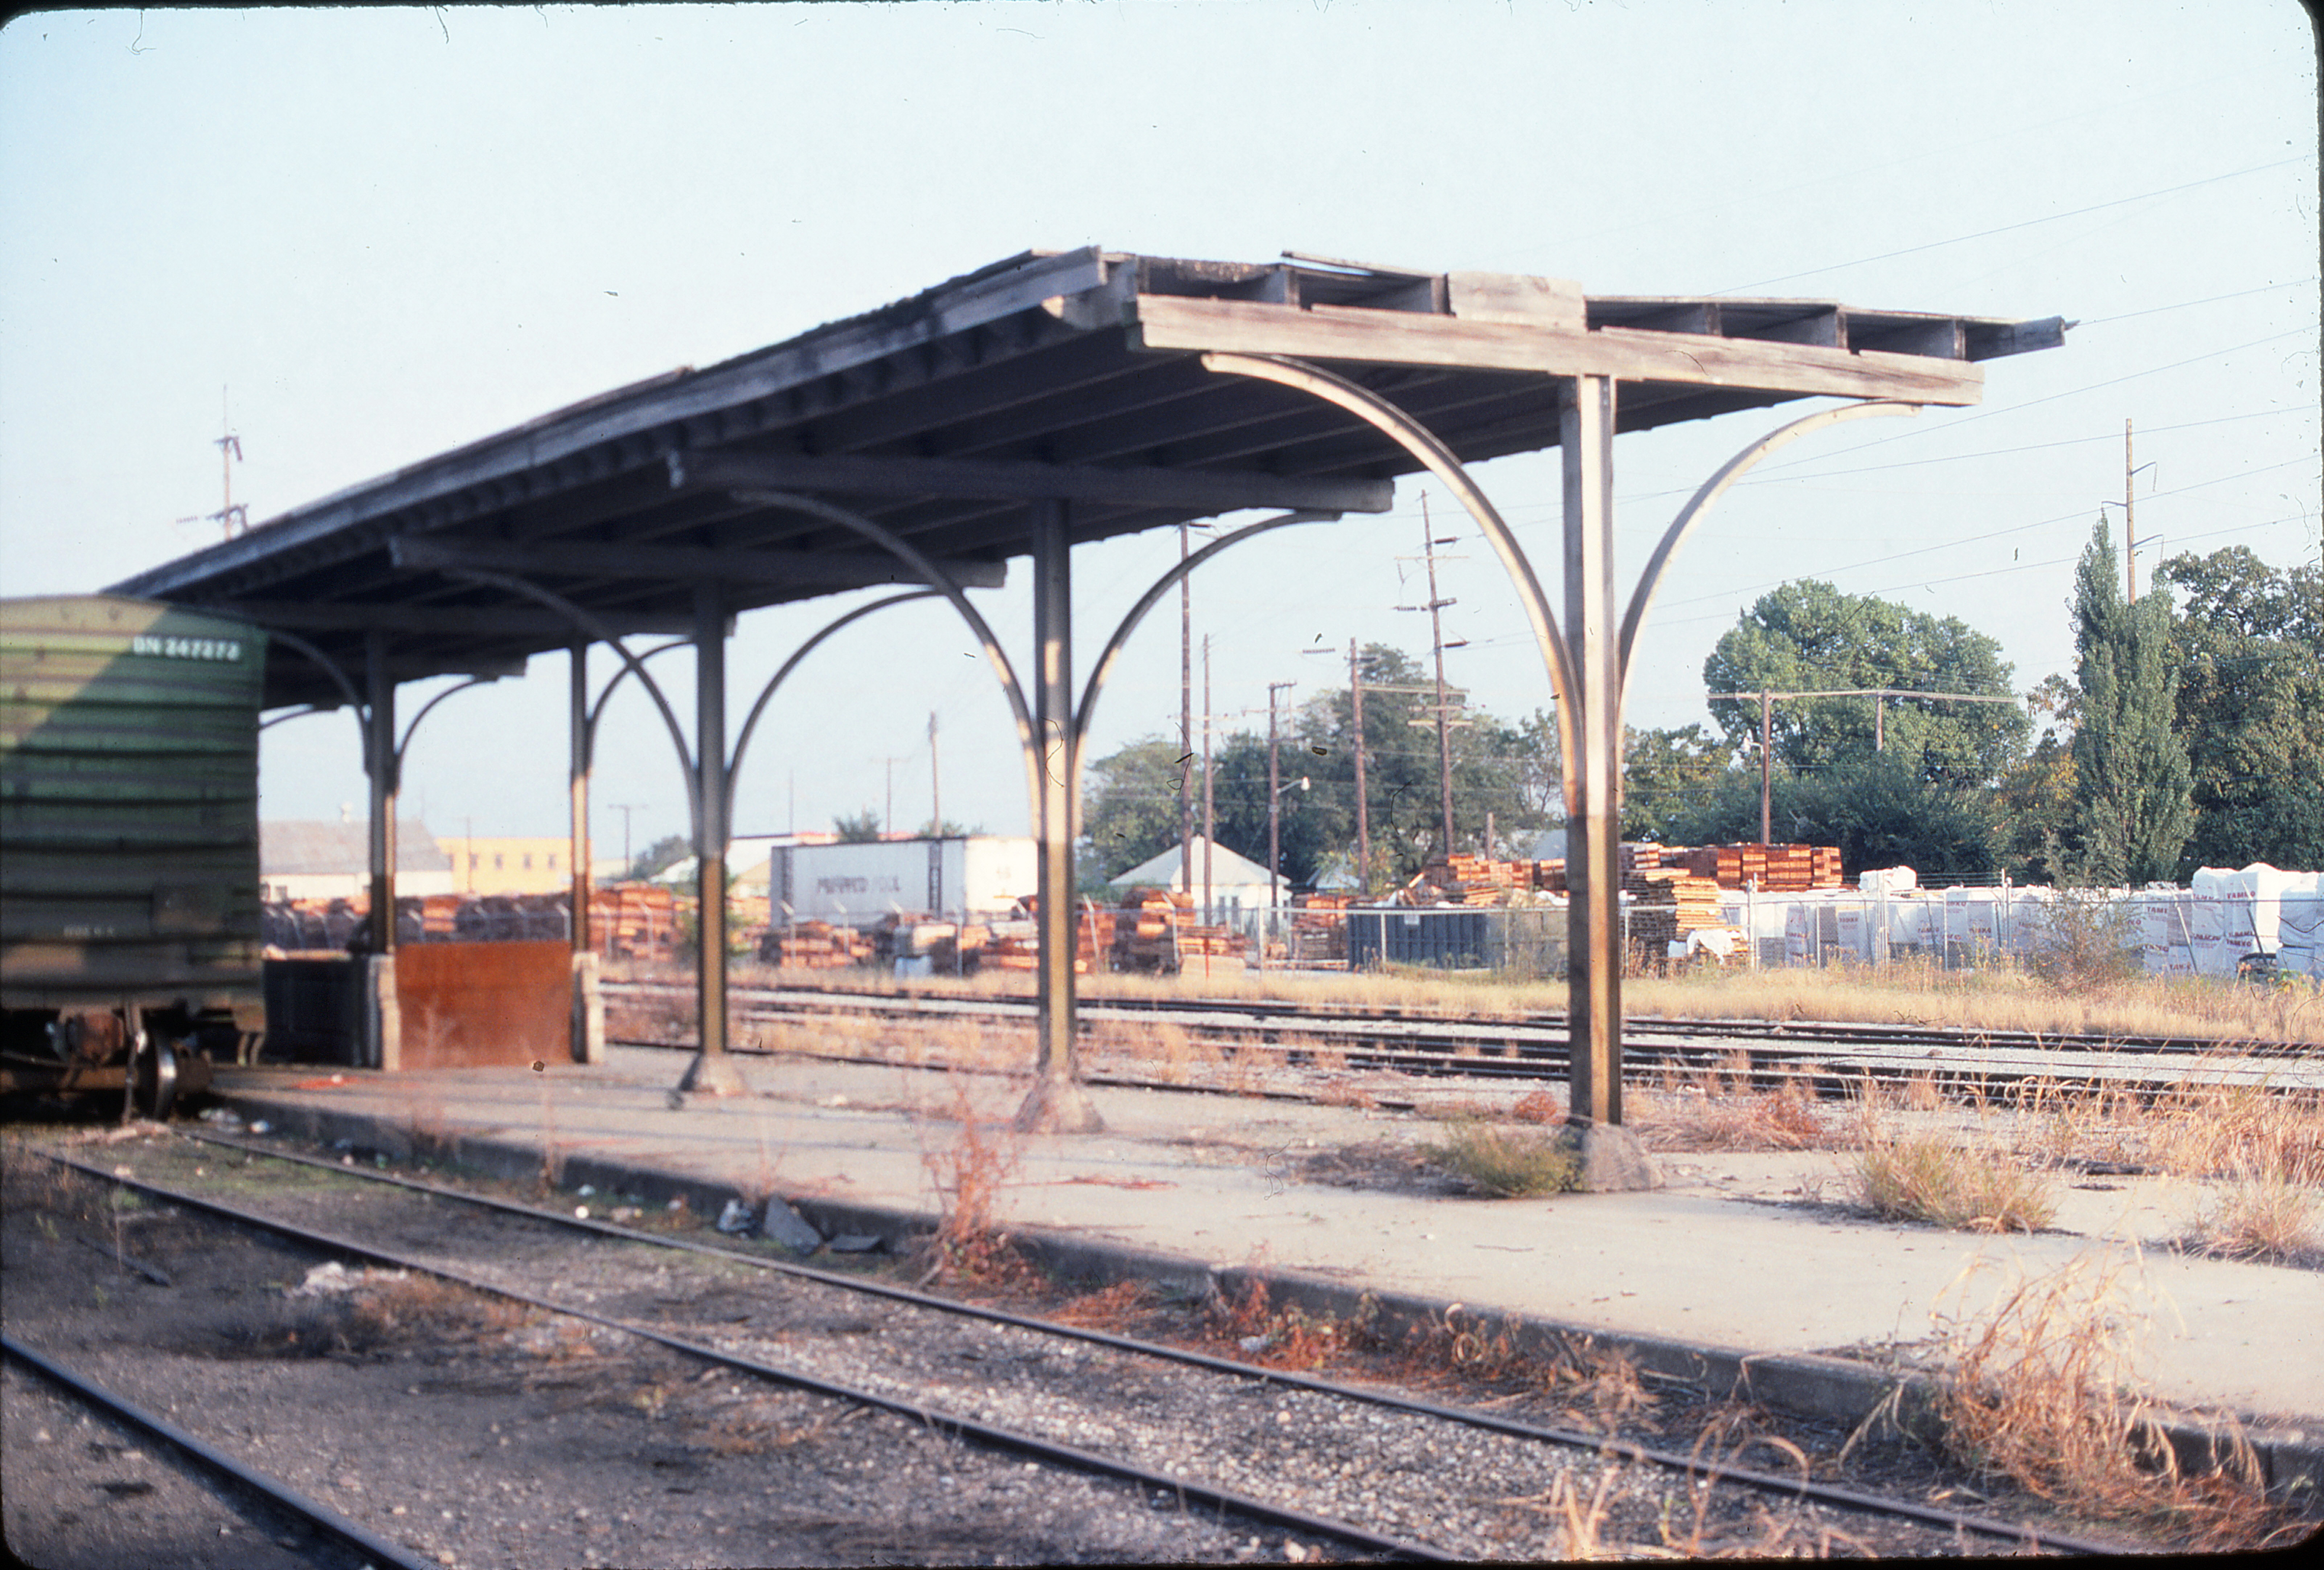 Oklahoma City Union Station in September 1989 (Ken McElreath)